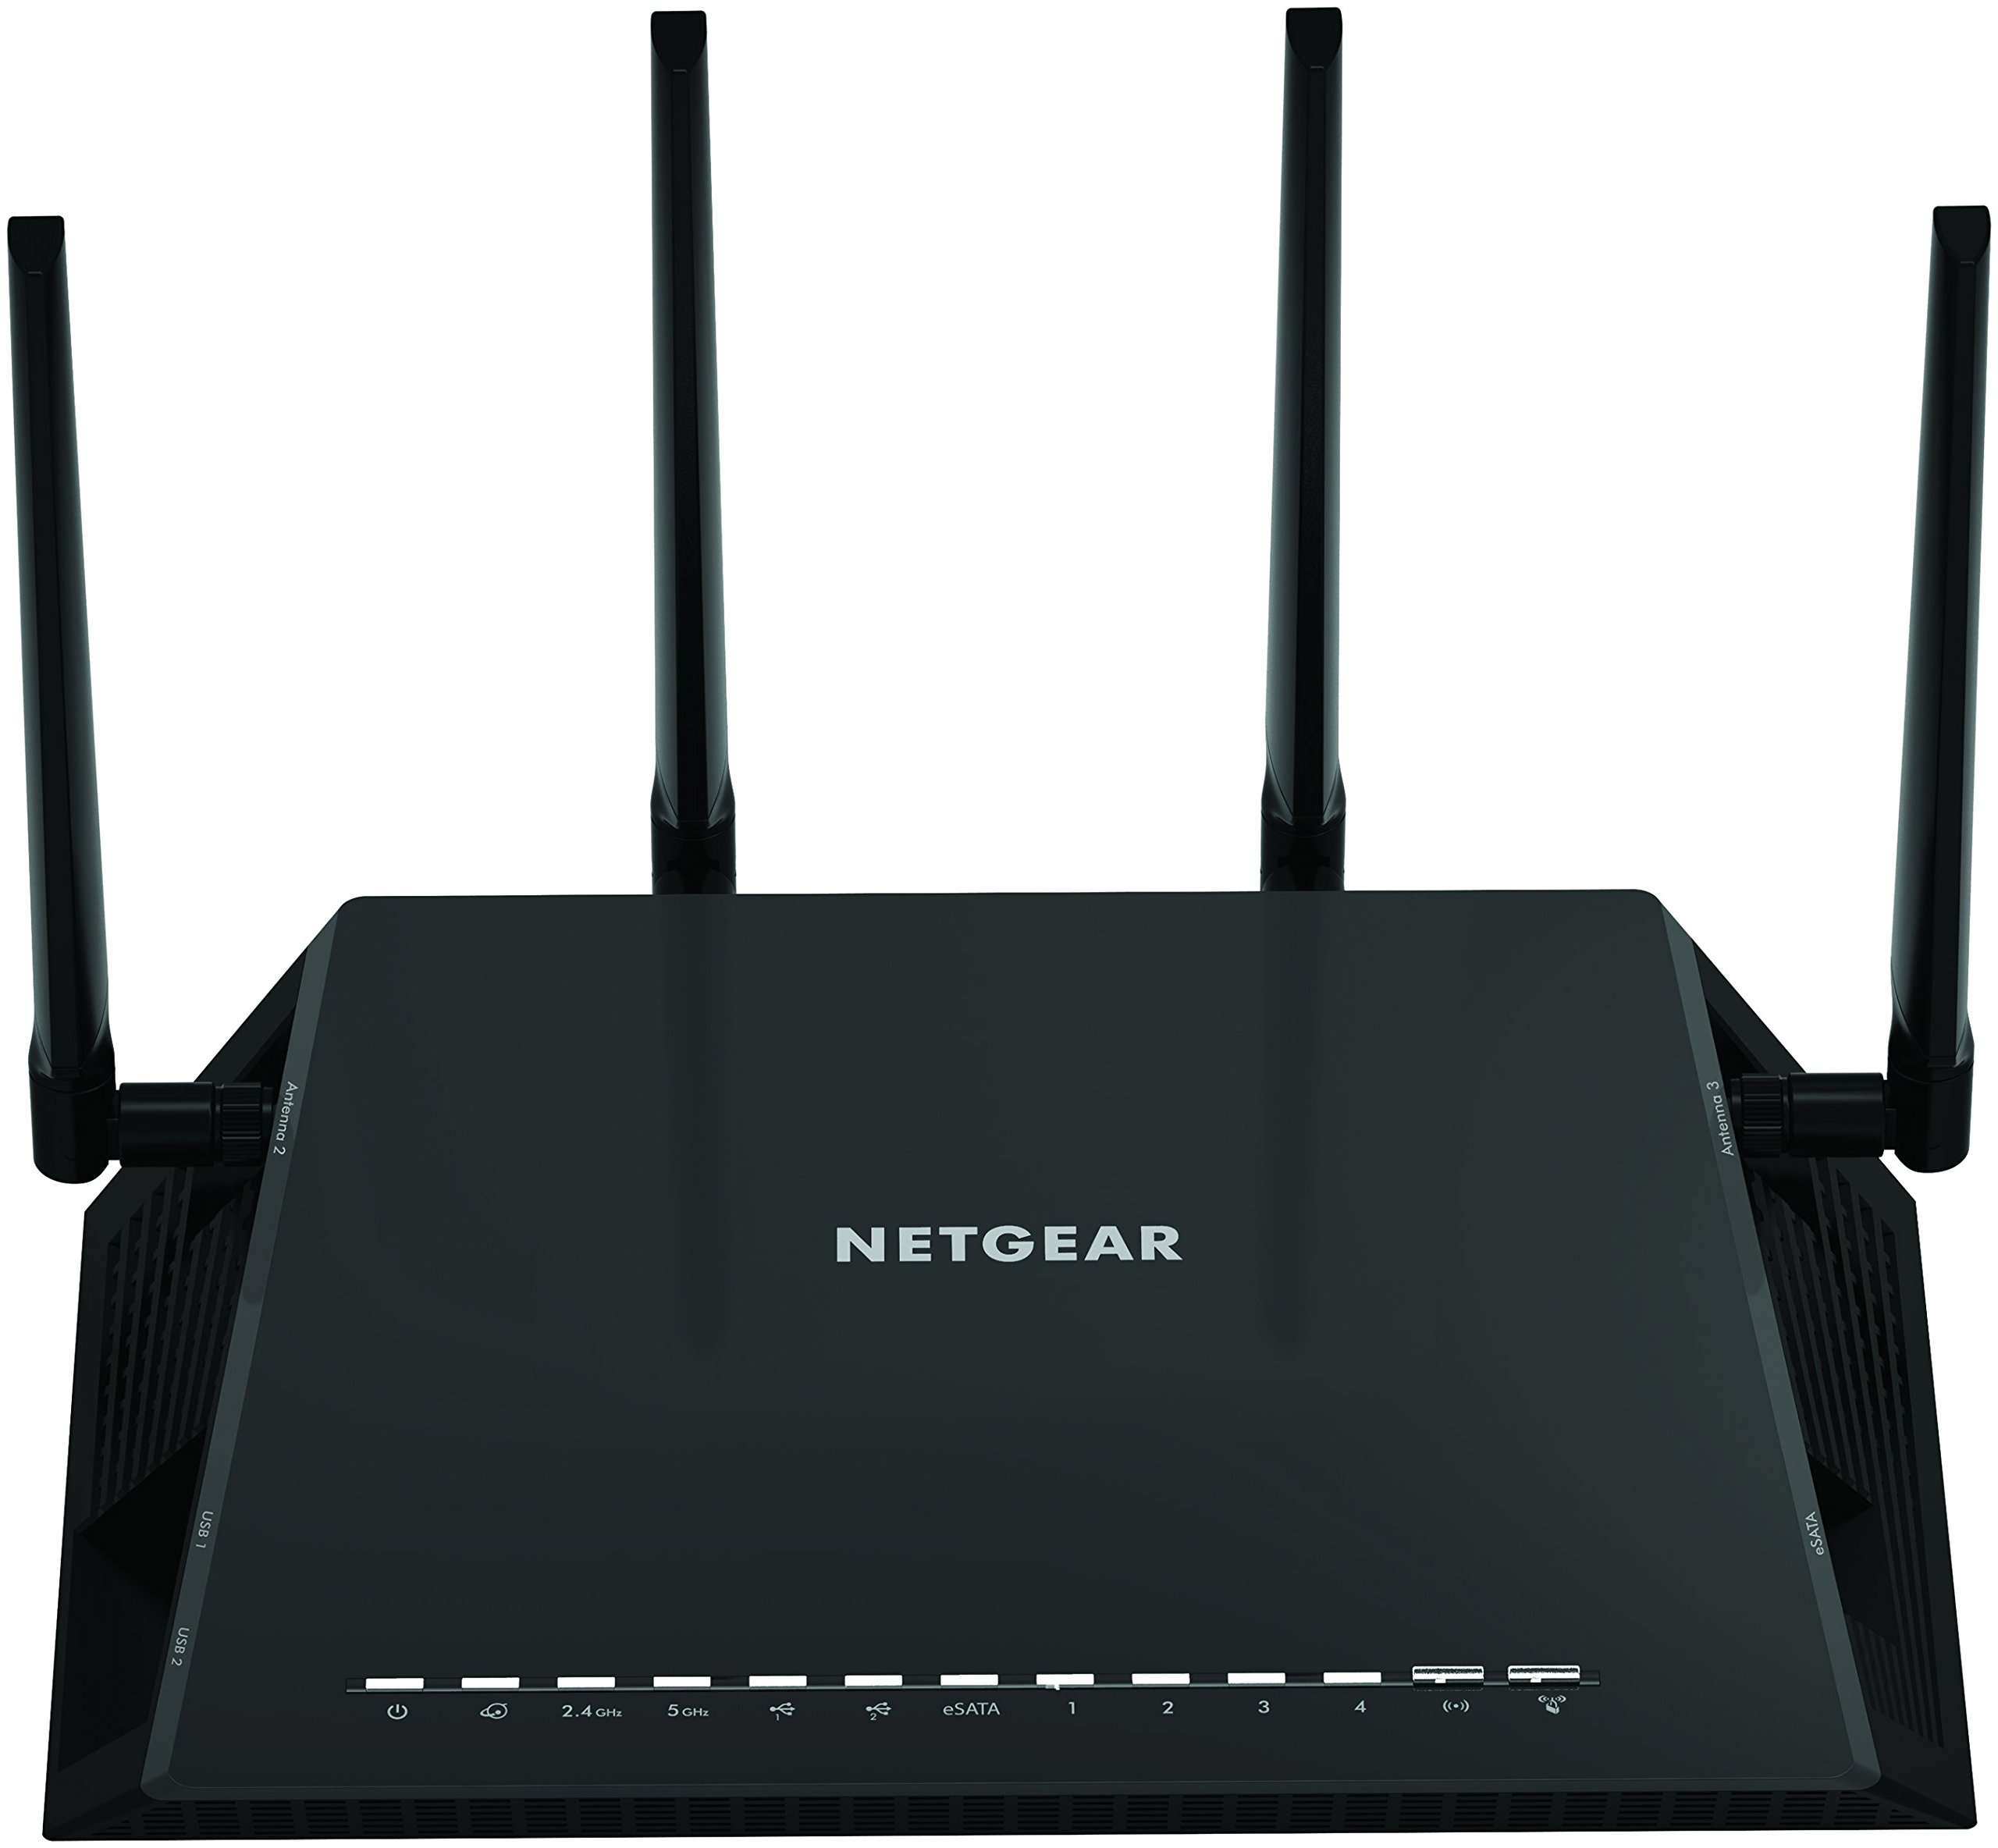 NETGEAR Nighthawk X4S - AC2600 4x4 MU-MIMO Smart WiFi Dual Band Gigabit Gaming Router (R7800-100NAS) Compatible with Amazon Echo/Alexa